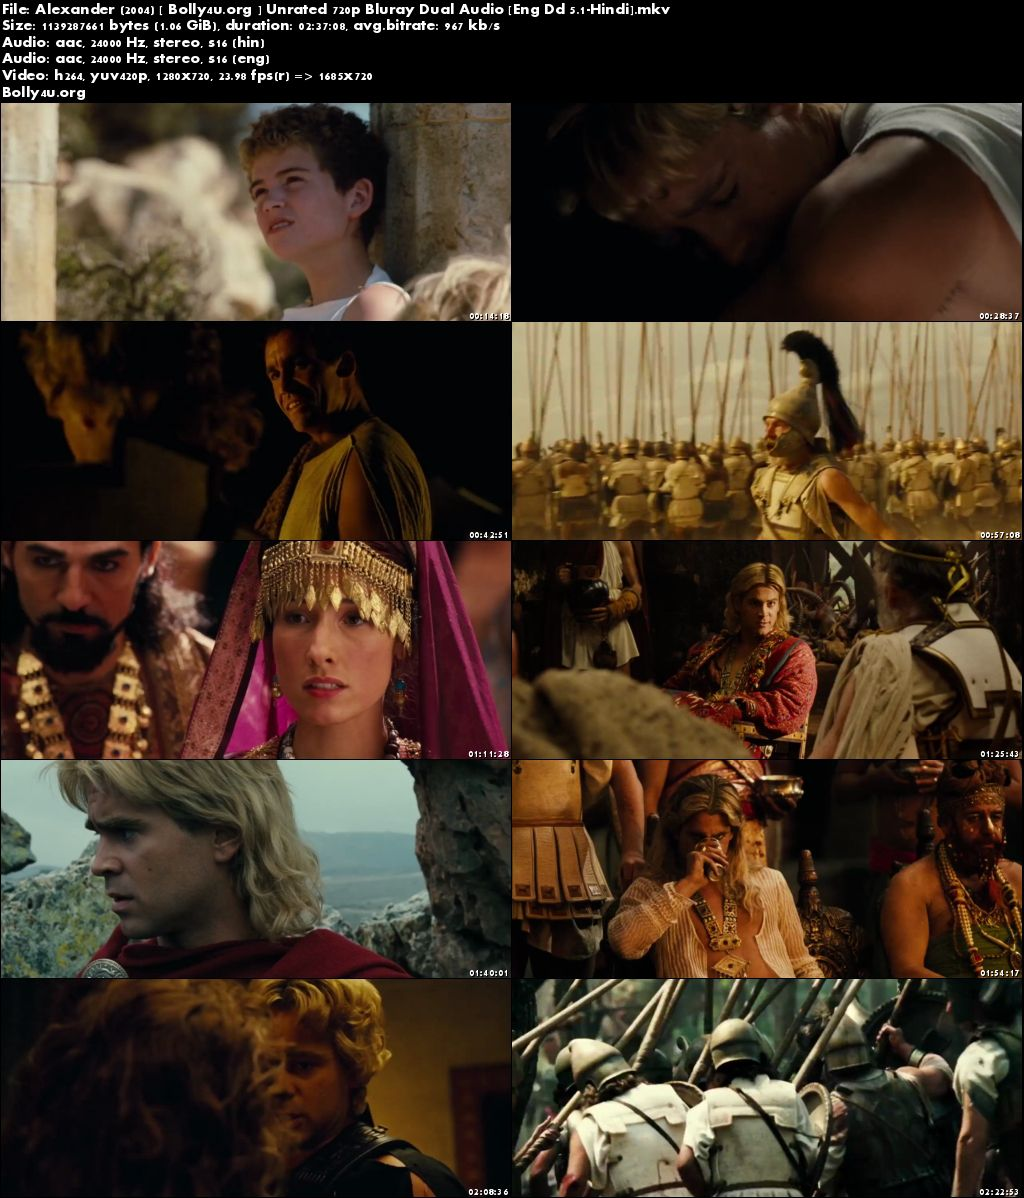 Alexander 2004 BluRay 1GB UNRATED Hindi Dual Audio 720p Download